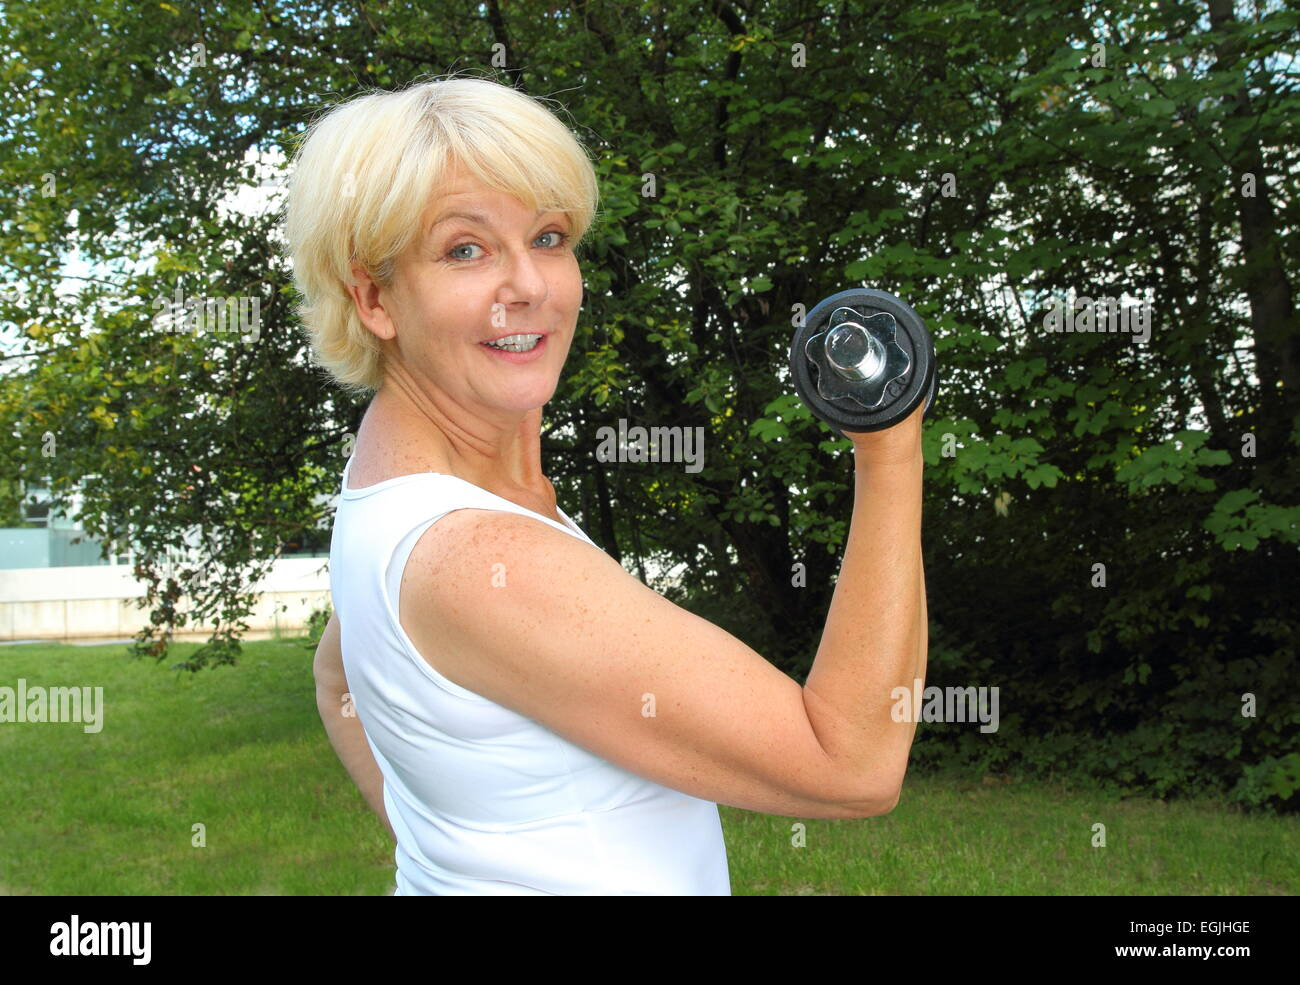 A Elderly woman doing outdoor training in a park with dumbbell - Stock Image